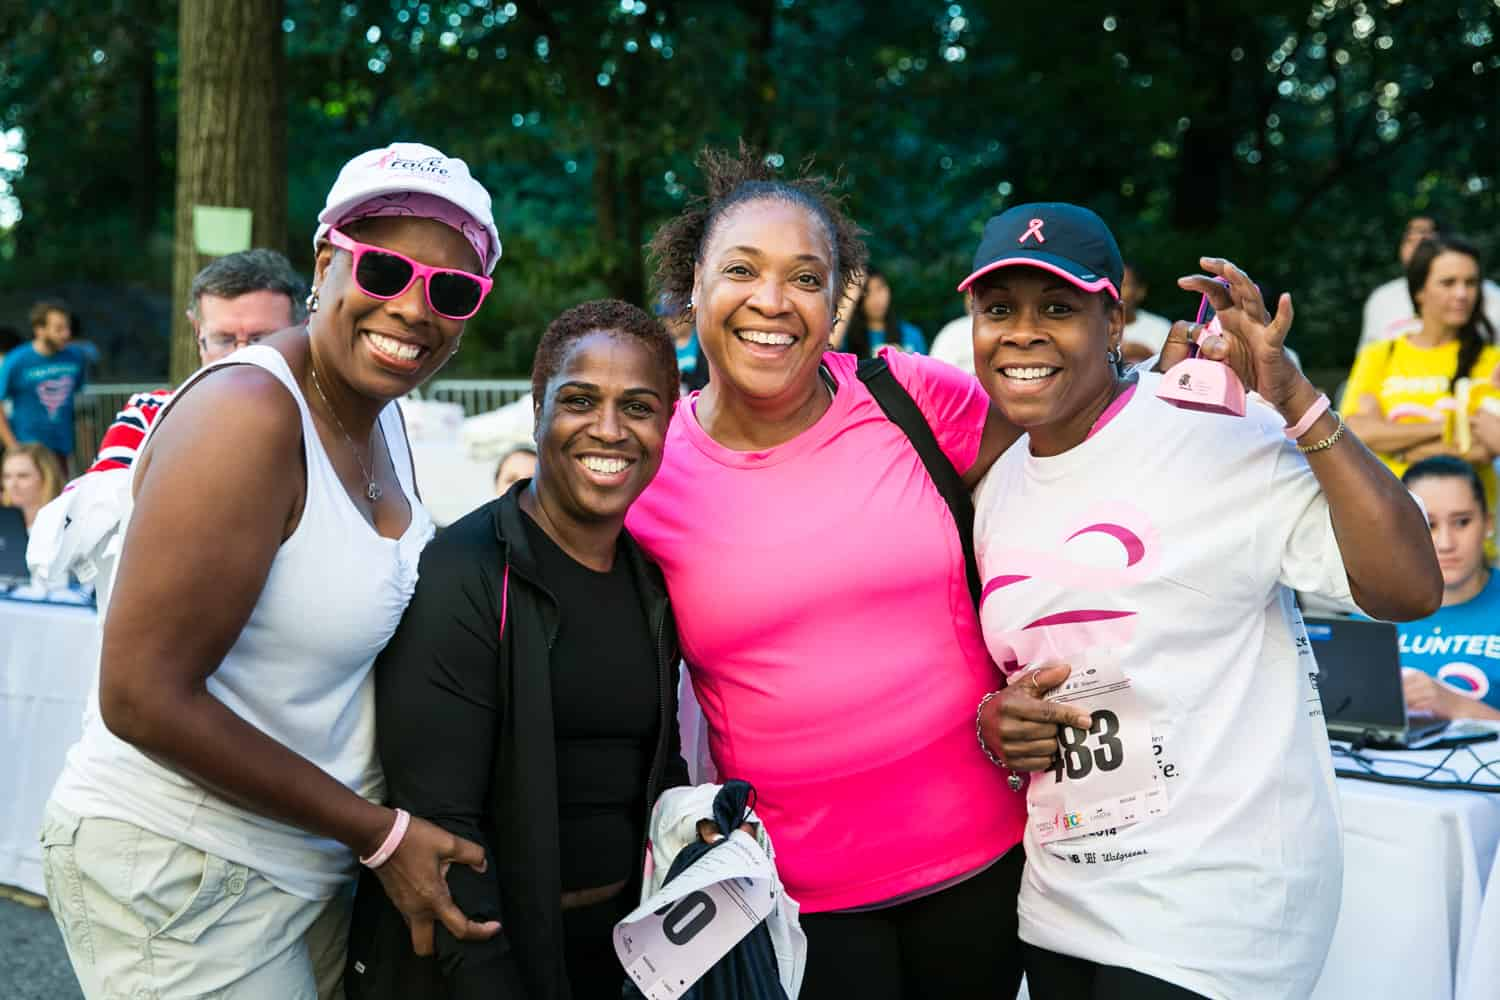 NYC Race for the Cure photos of group of African American female runners